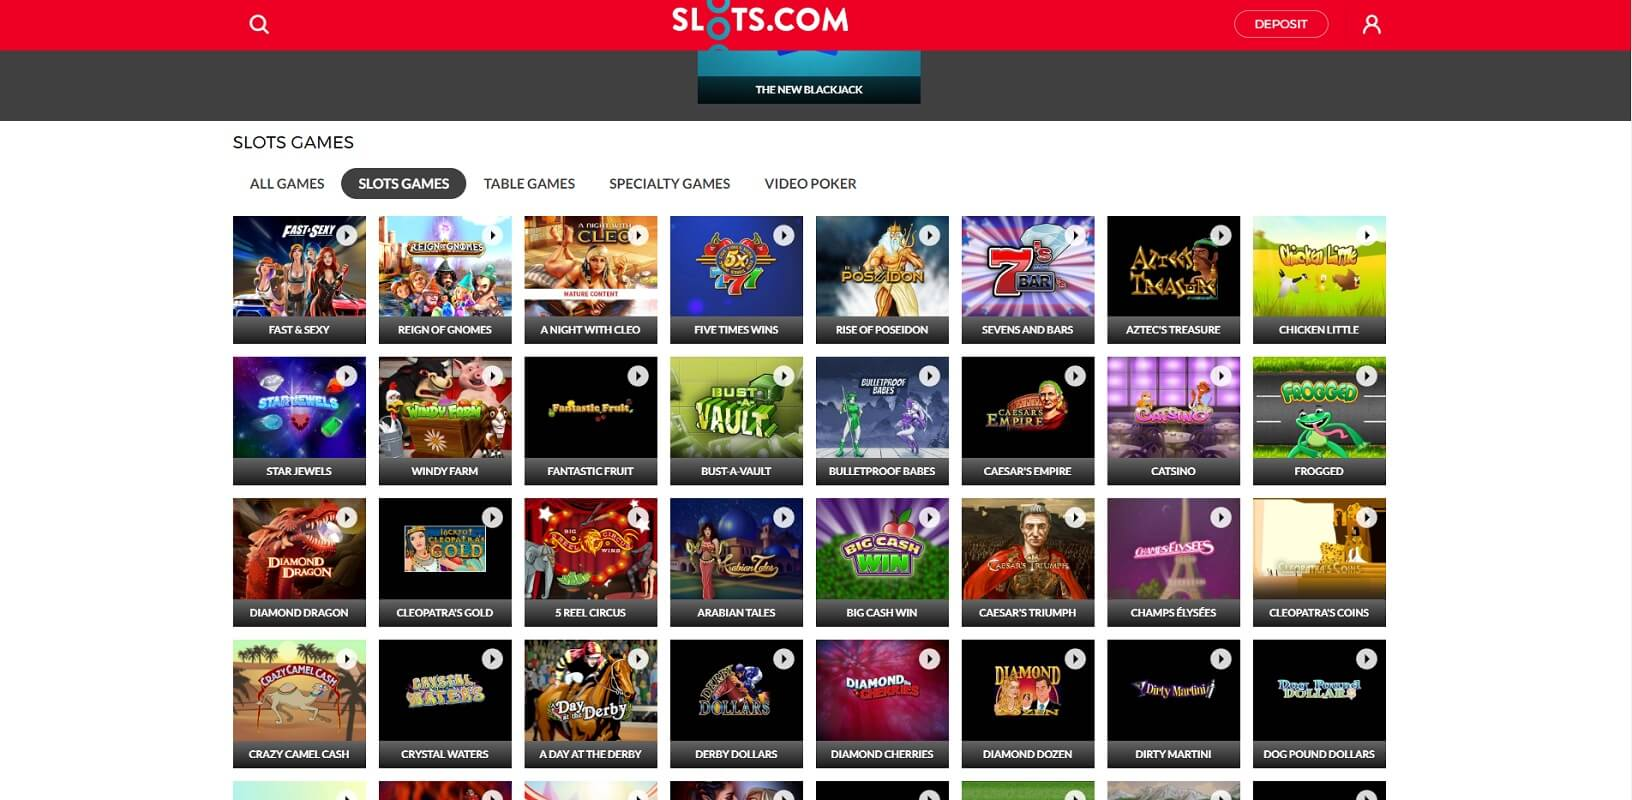 Slot games at Slots.com online casino